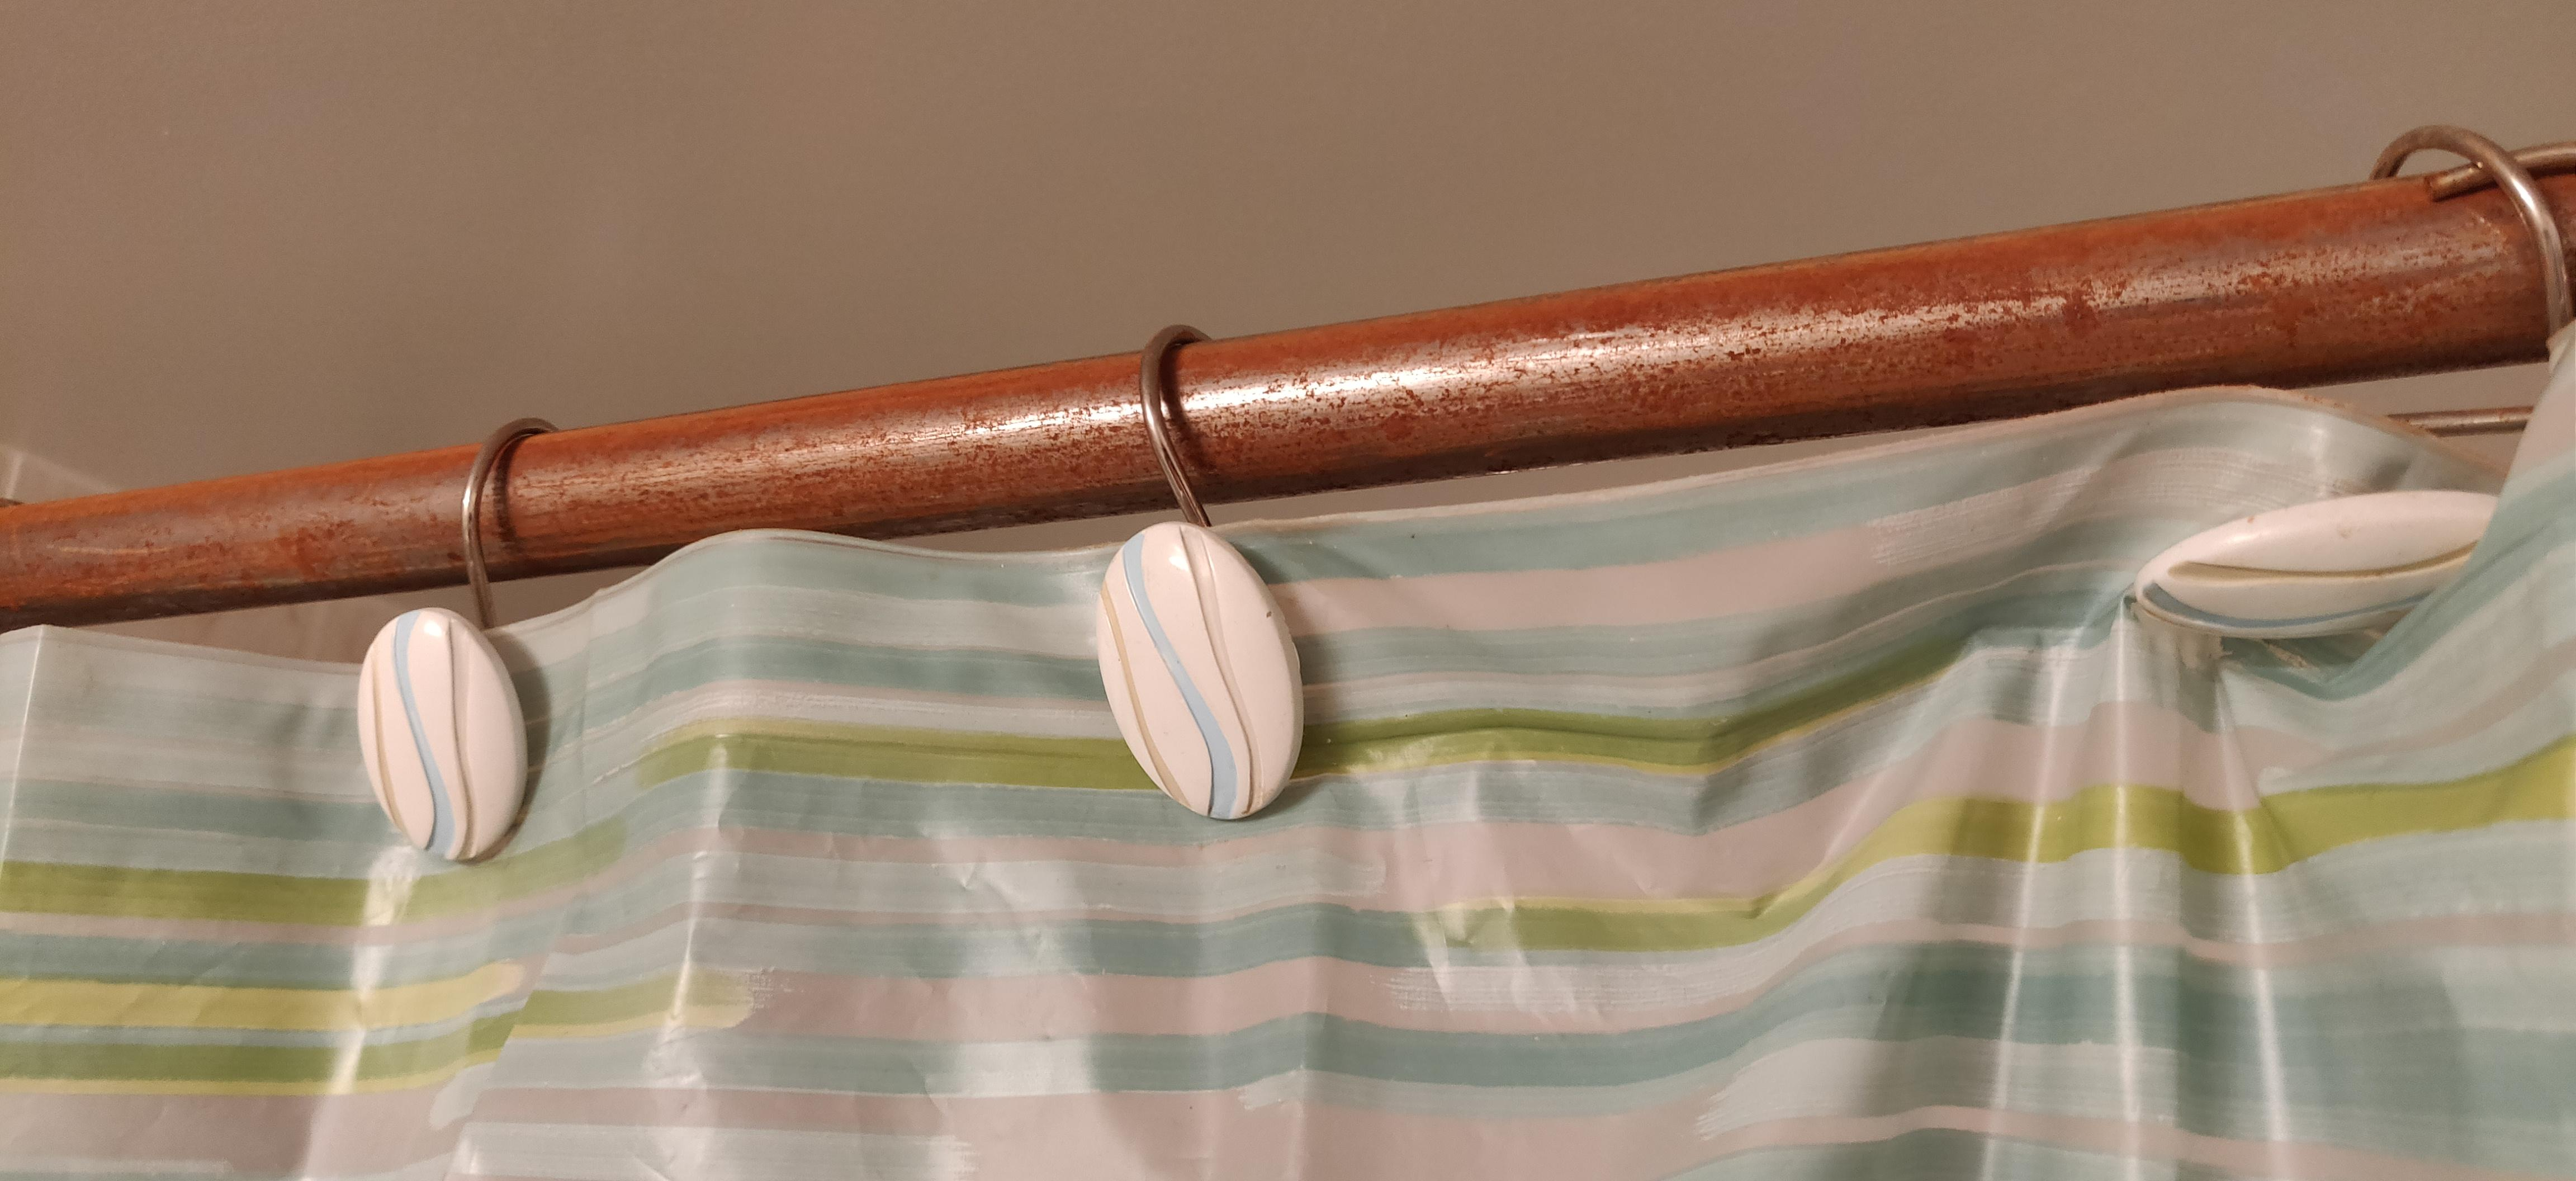 Unique Shower Curtain Rods The Shower Curtain Rod That Can Rust Crappydesign